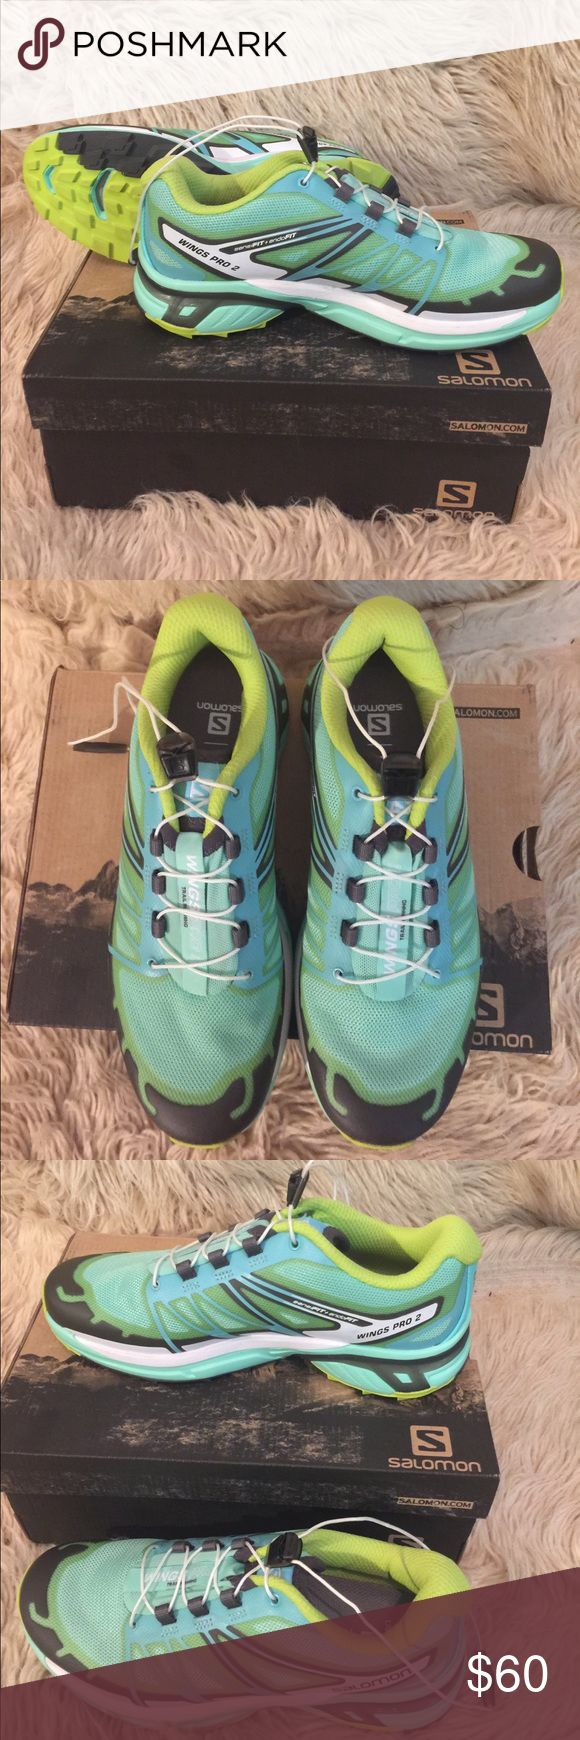 SALOMON Wings Pro 2 Trail Running Shoes, size 6.5 SALOMON Wings Pro 2 Trail Running Shoes, size 6.5.  Lucite green/Bubble blue/Gecko green.  Mesh upper w/ synthetic overlays.  Rubber toe cap.  Quicklace quick-pull lacing system w/ friction resistant eyelets & Lace pocket. Salomon Shoes Sneakers